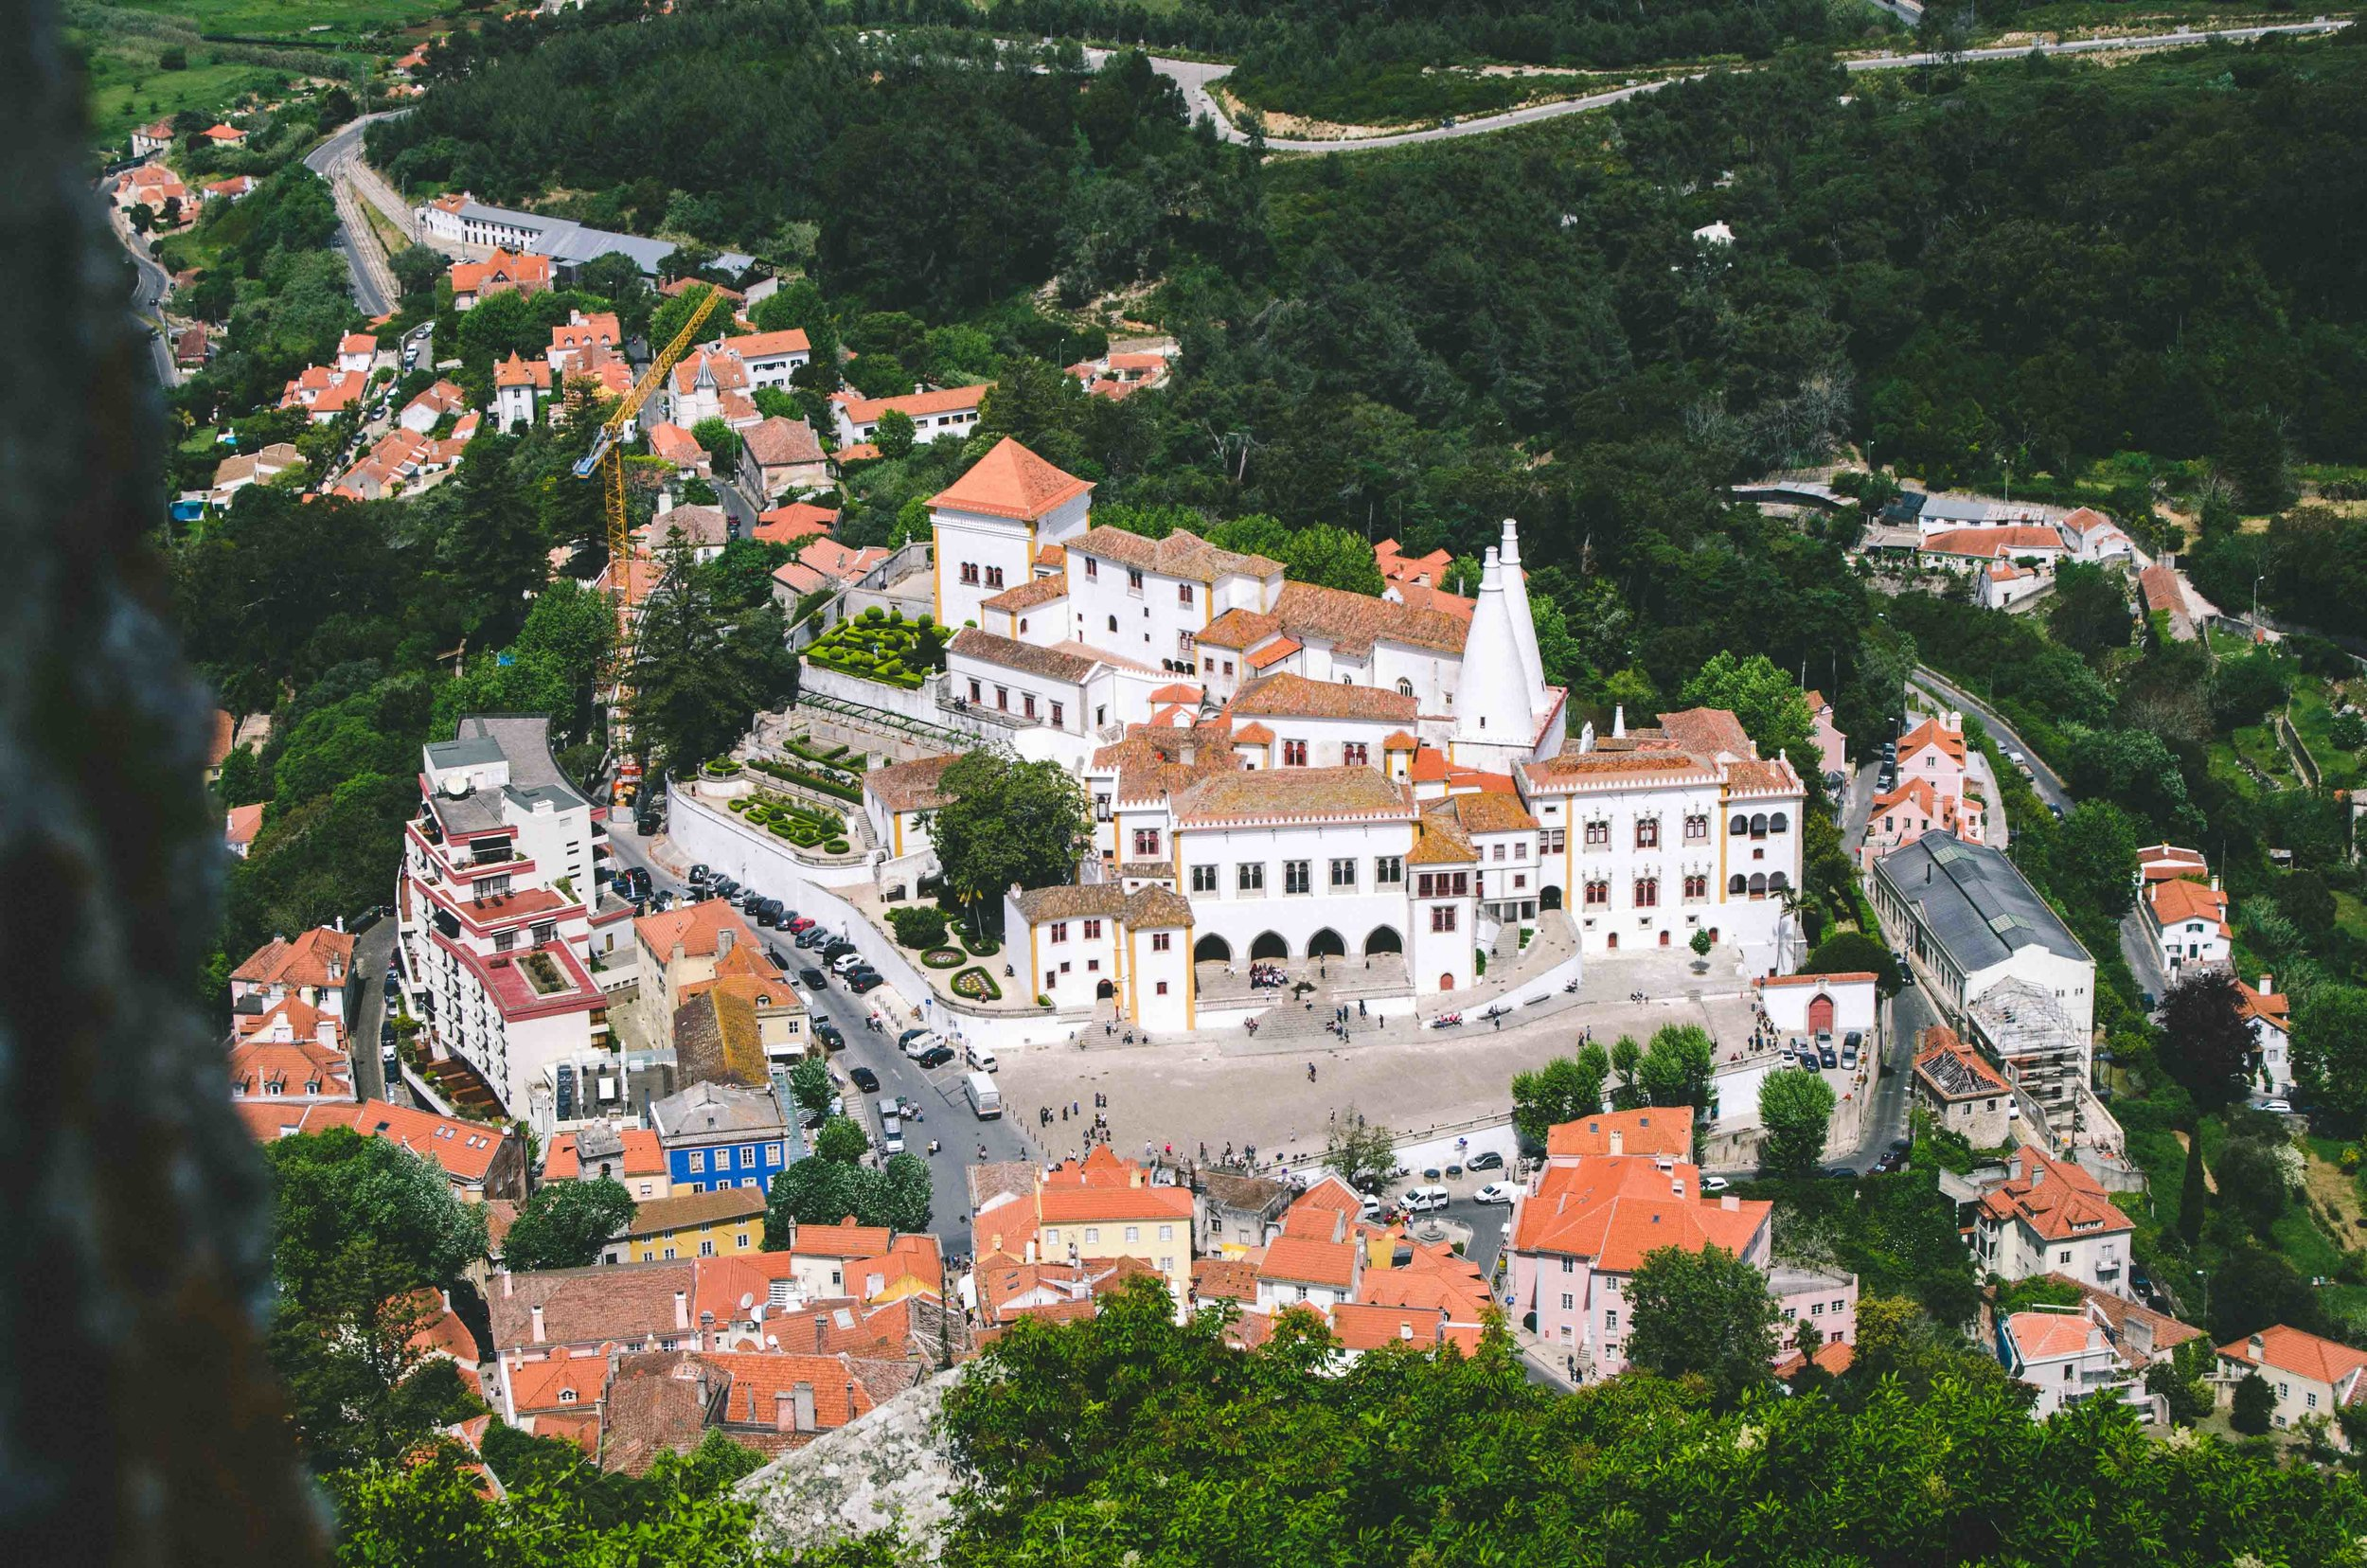 View of the  Palácio Nacional  from  Castelo dos Mouros